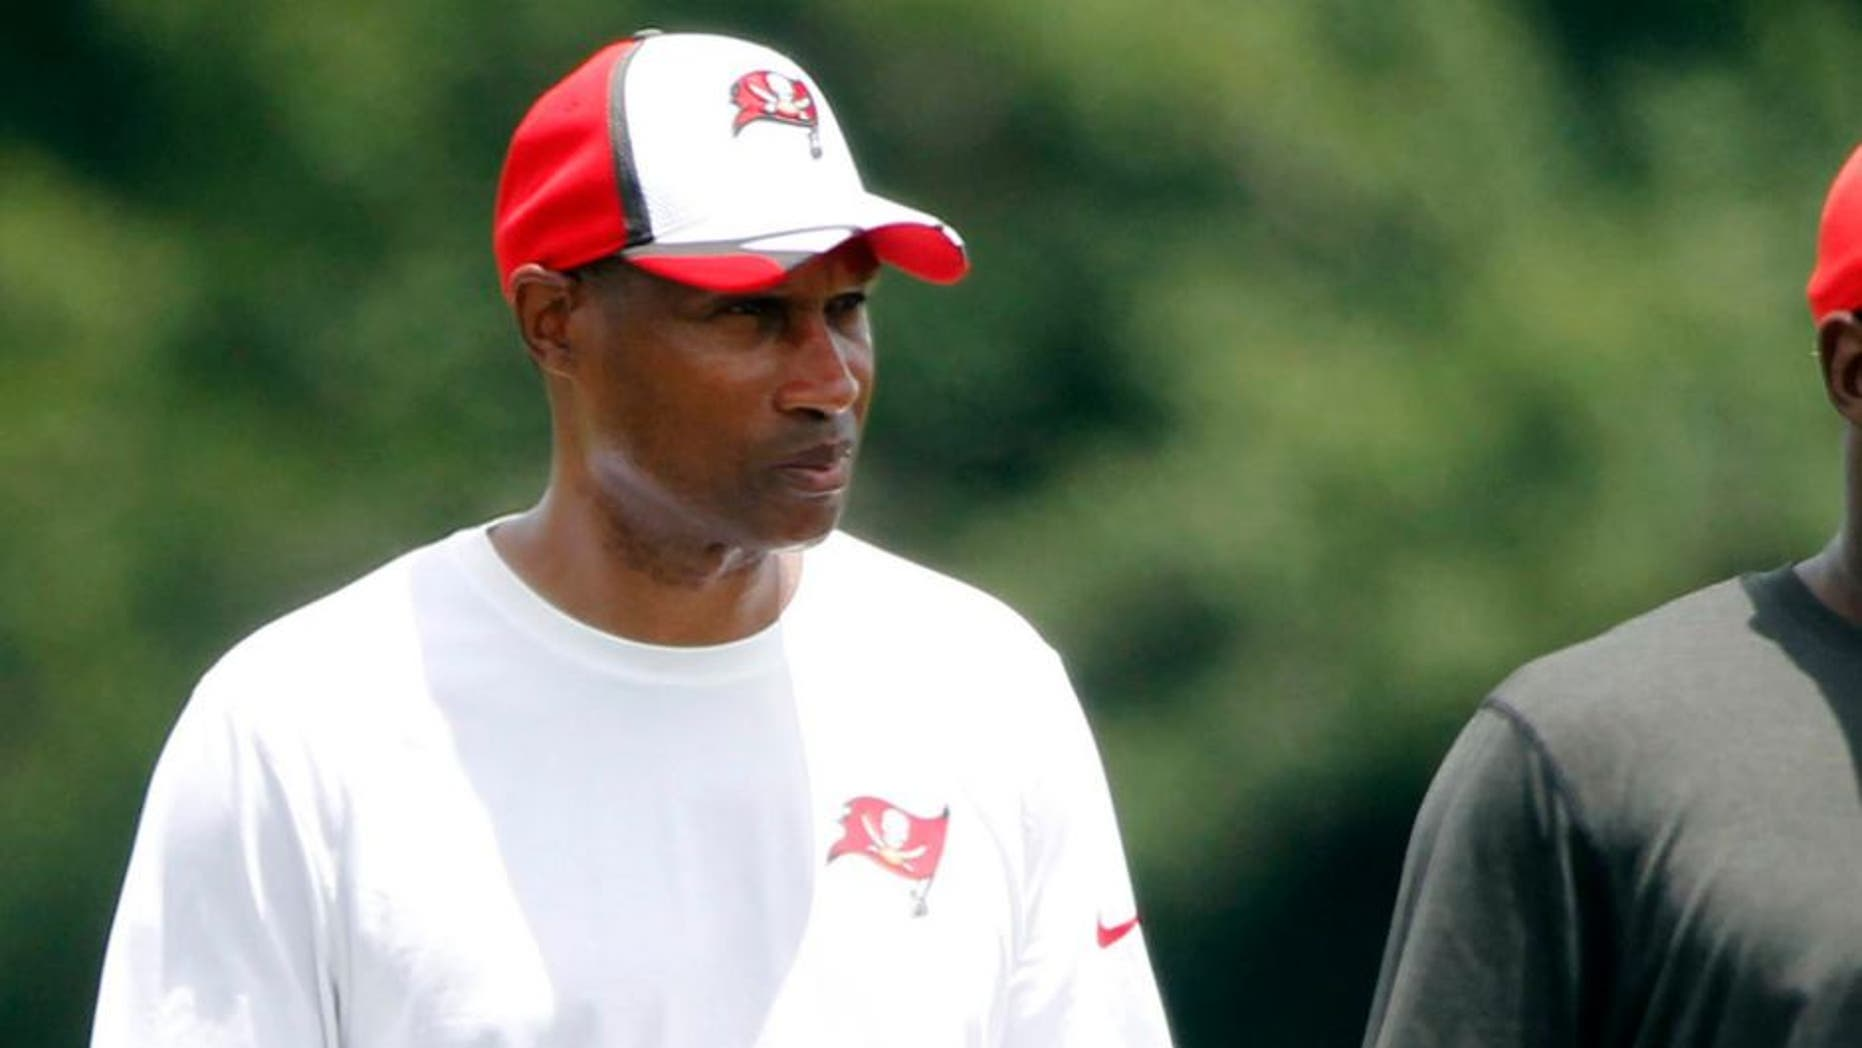 Jul 28, 2014; Tampa, FL, USA; Tampa Bay Buccaneers defensive coordinator Leslie Frazier during training camp at One Buc Place. Mandatory Credit: Kim Klement-USA TODAY Sports